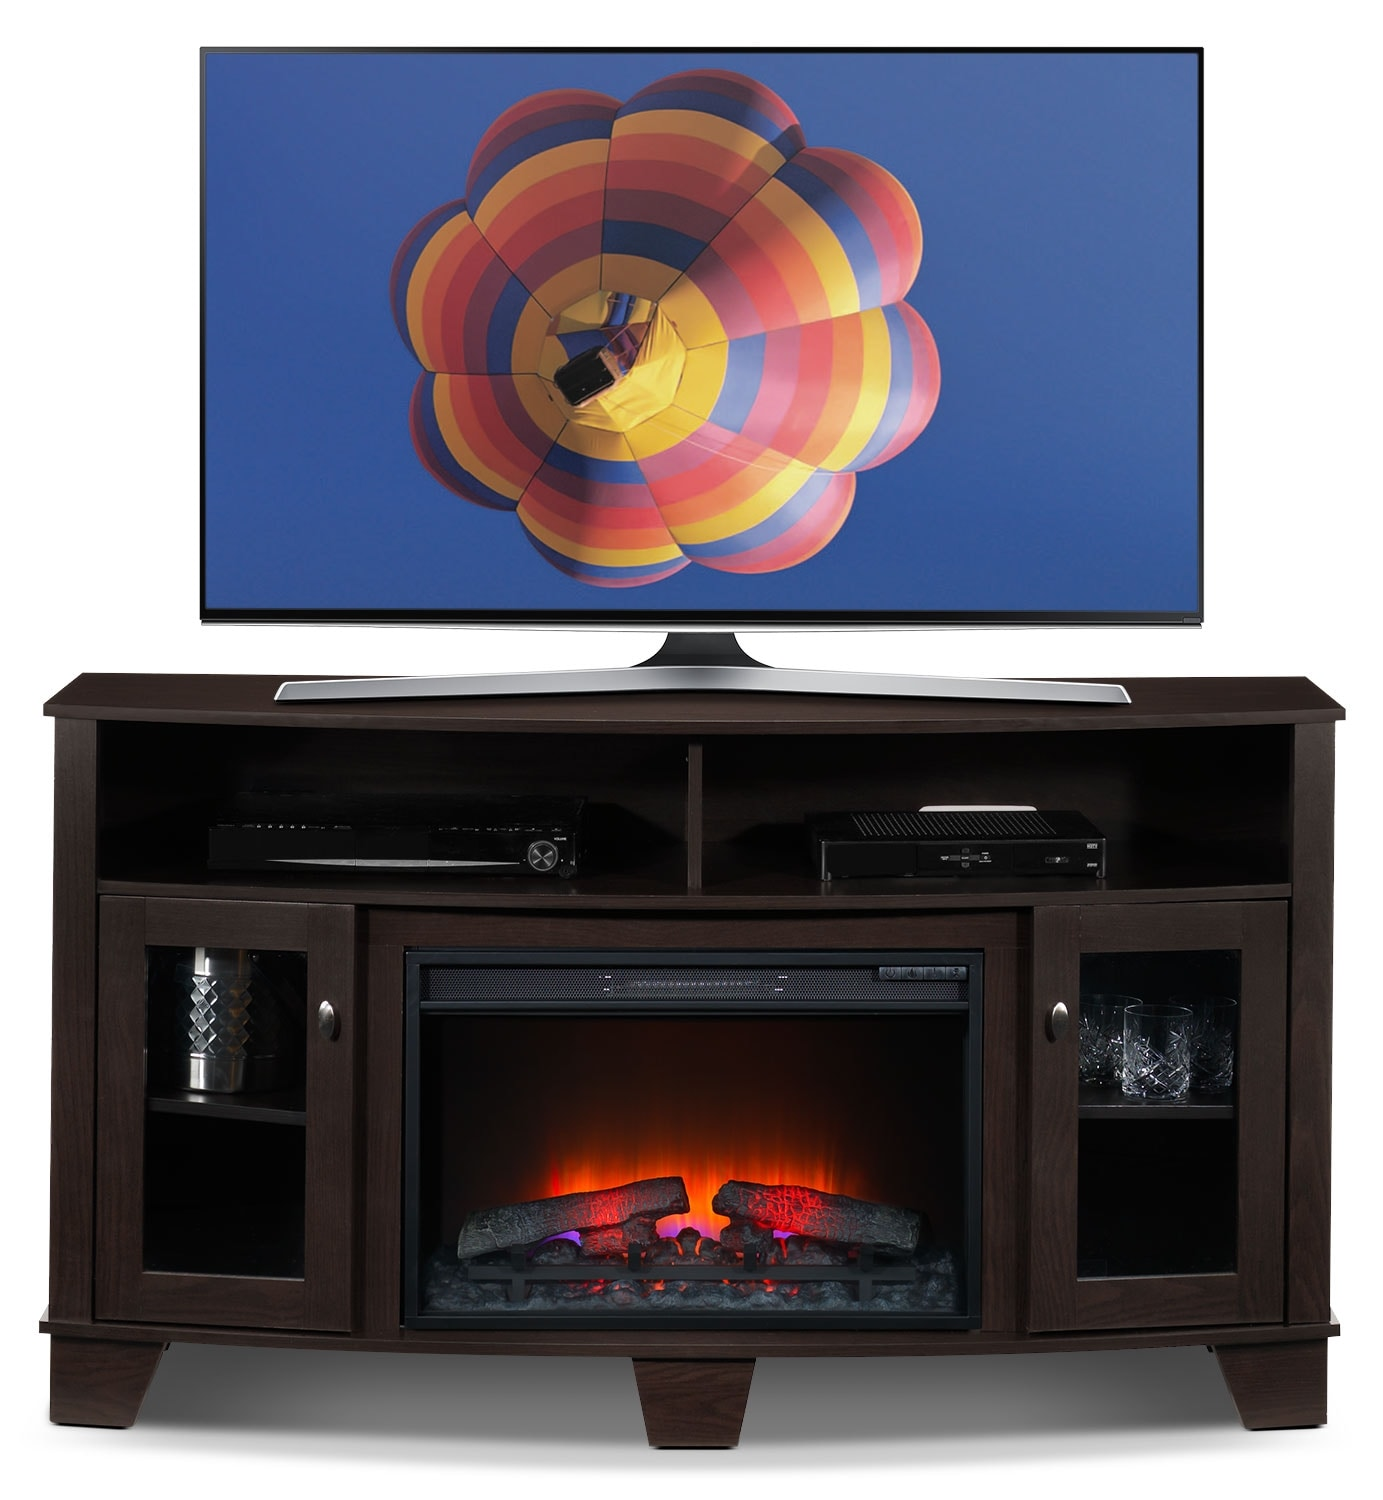 Lasalle Fireplace TV Stand